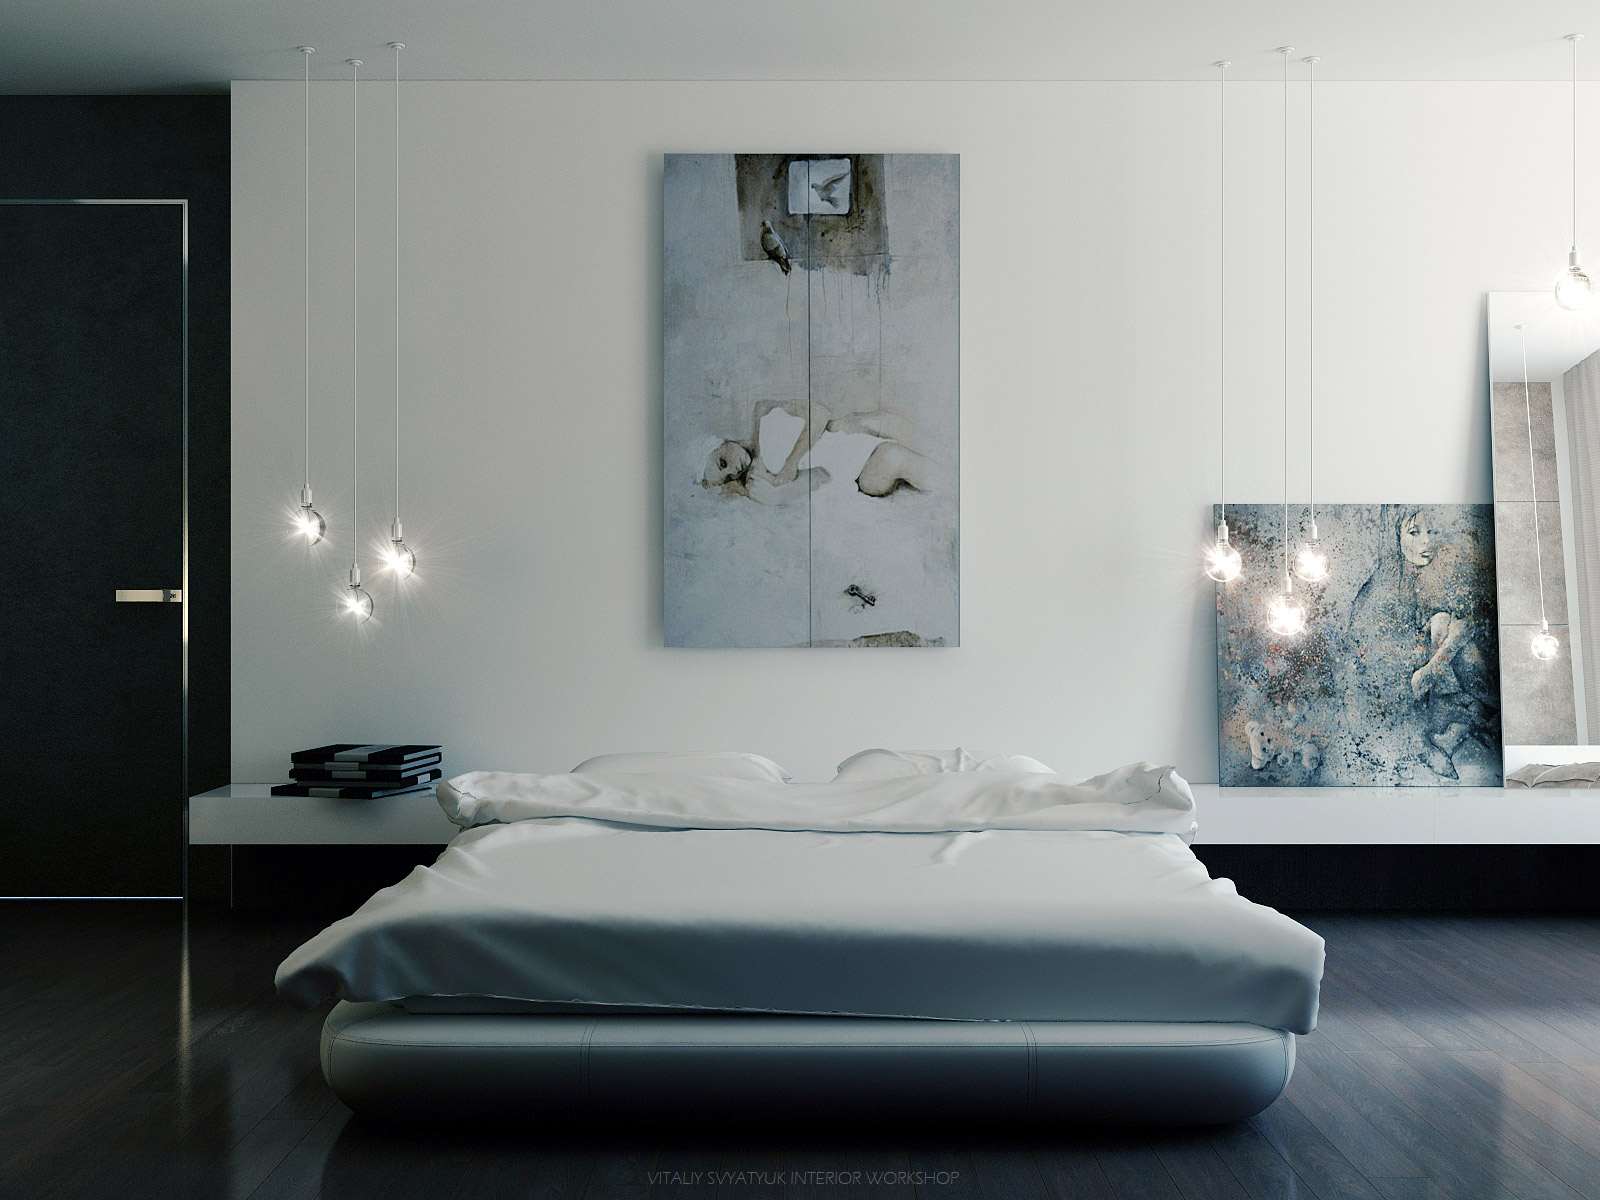 Svyatyuk Cool Art Cool Pallete Bedroom Interior Design Ideas